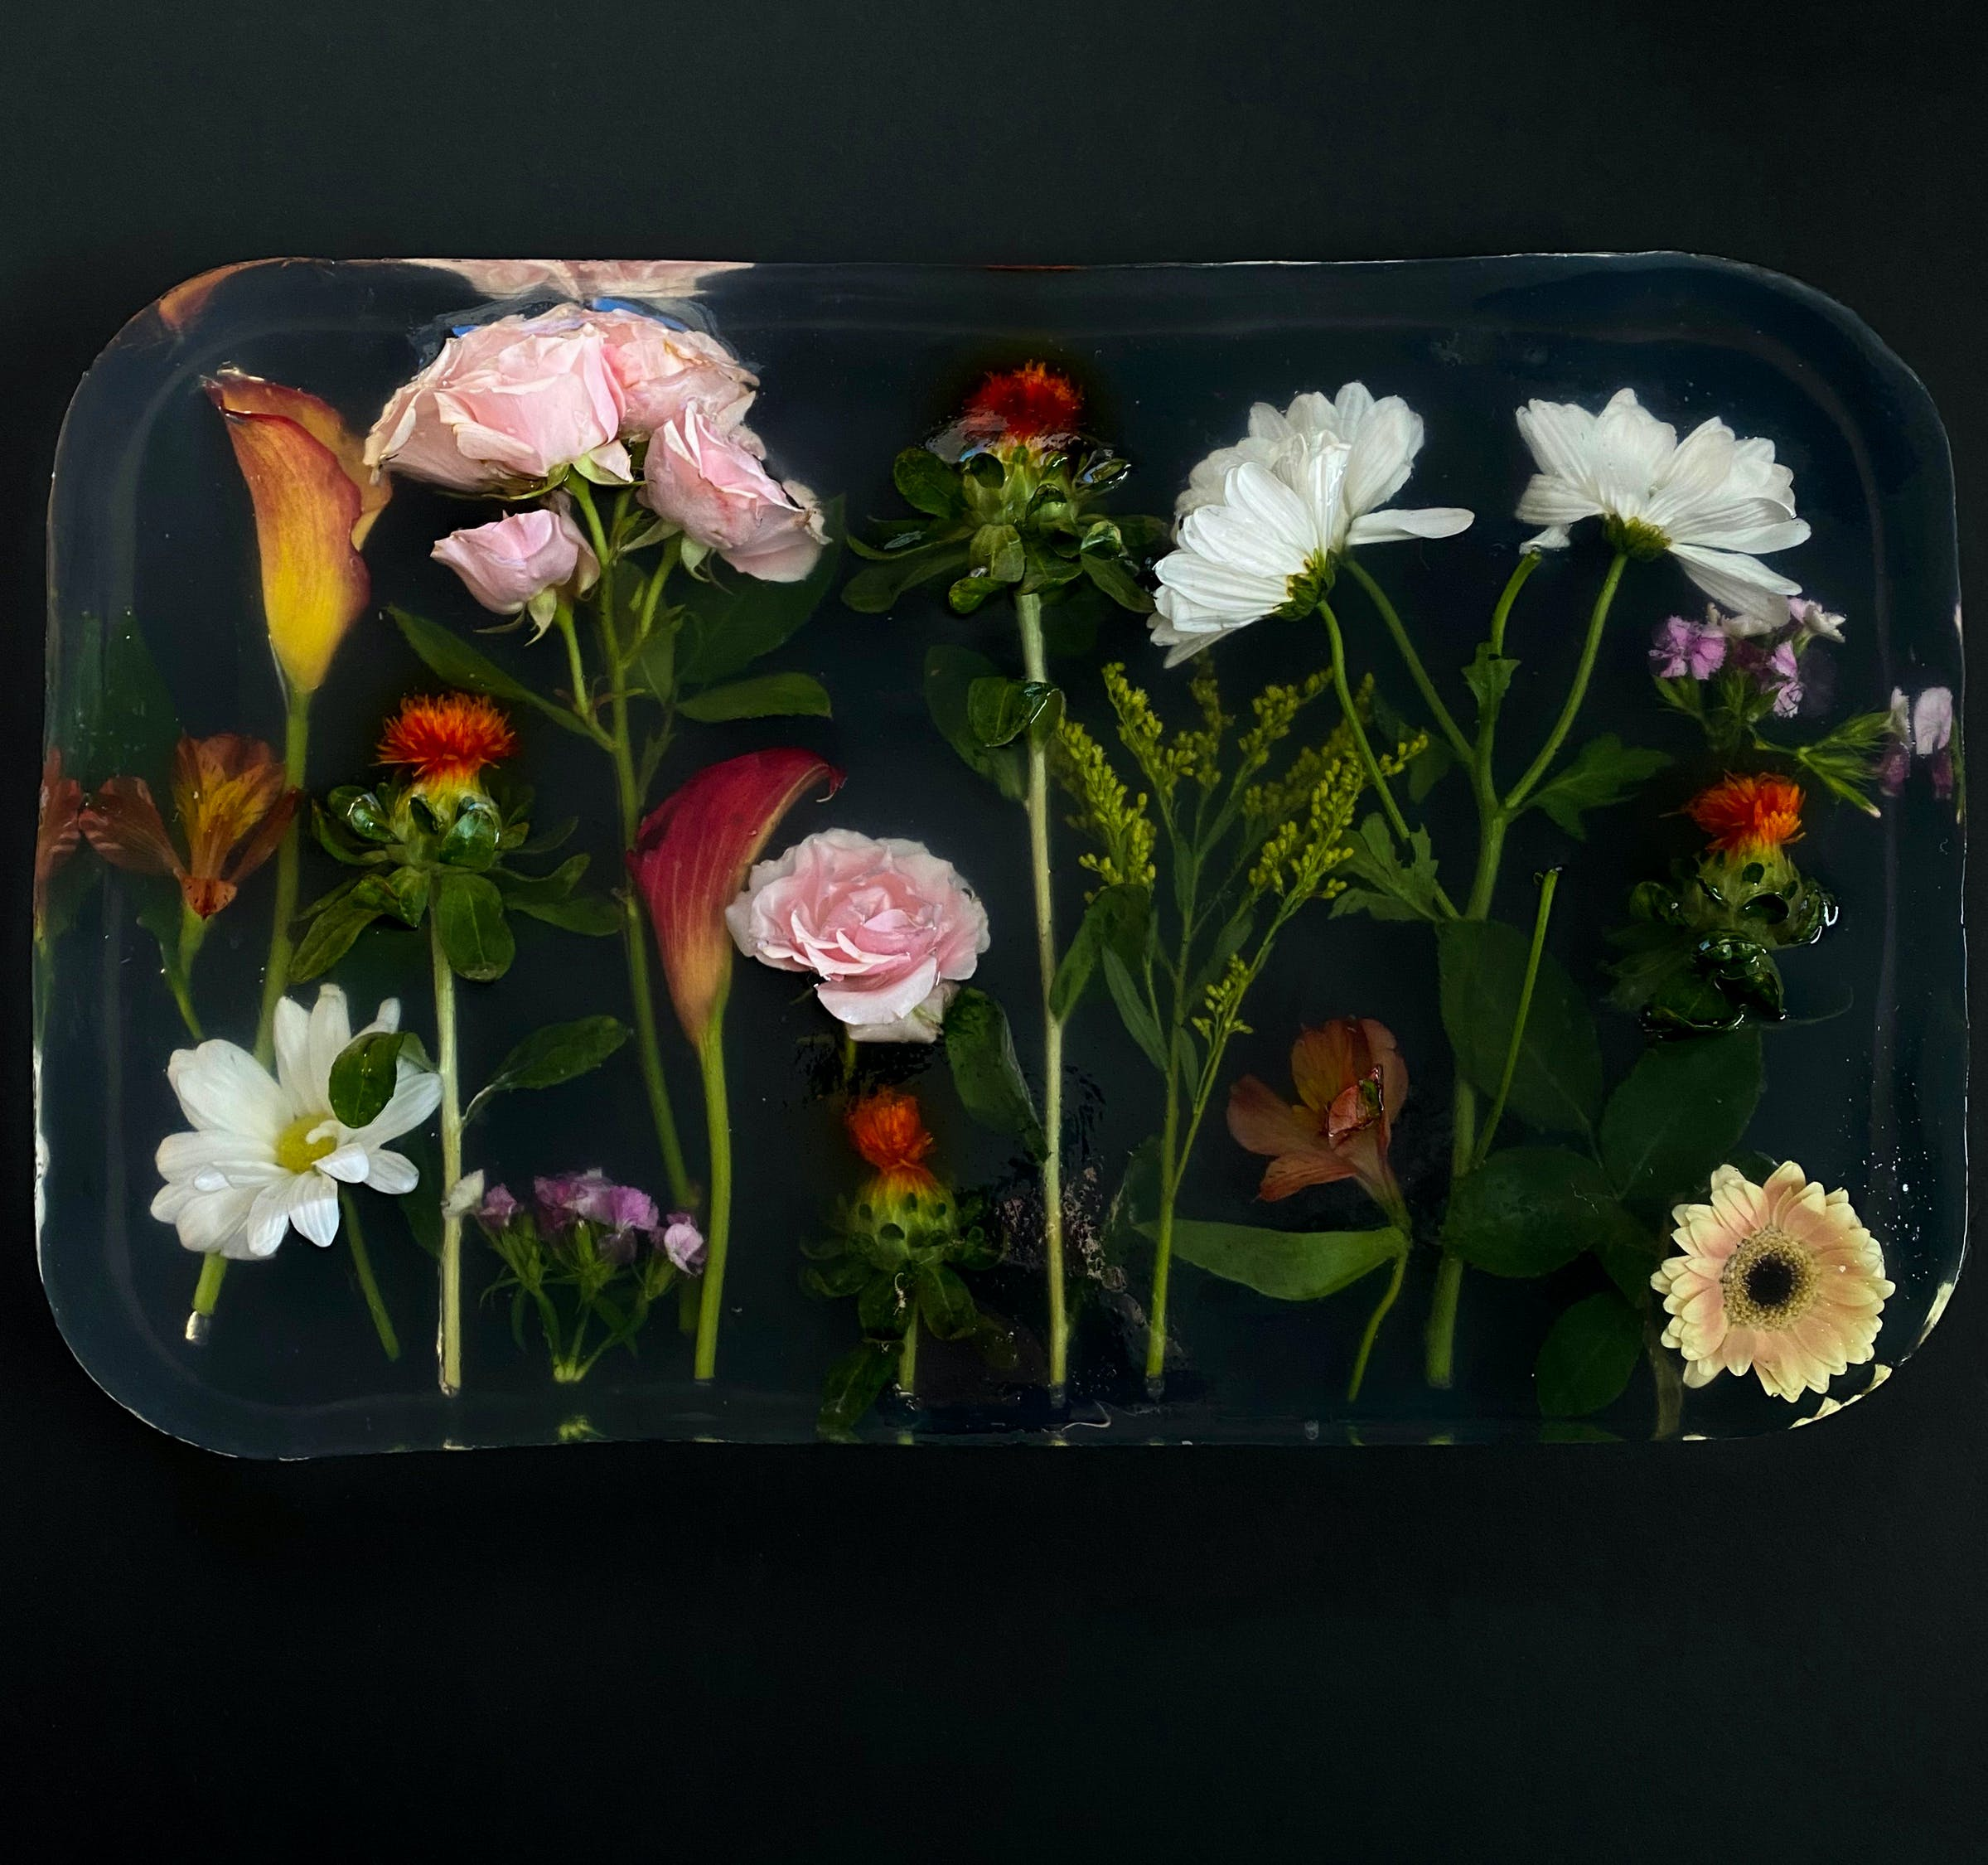 From above of composition of fresh blooming flowers in transparent epoxy resin placed on black surface